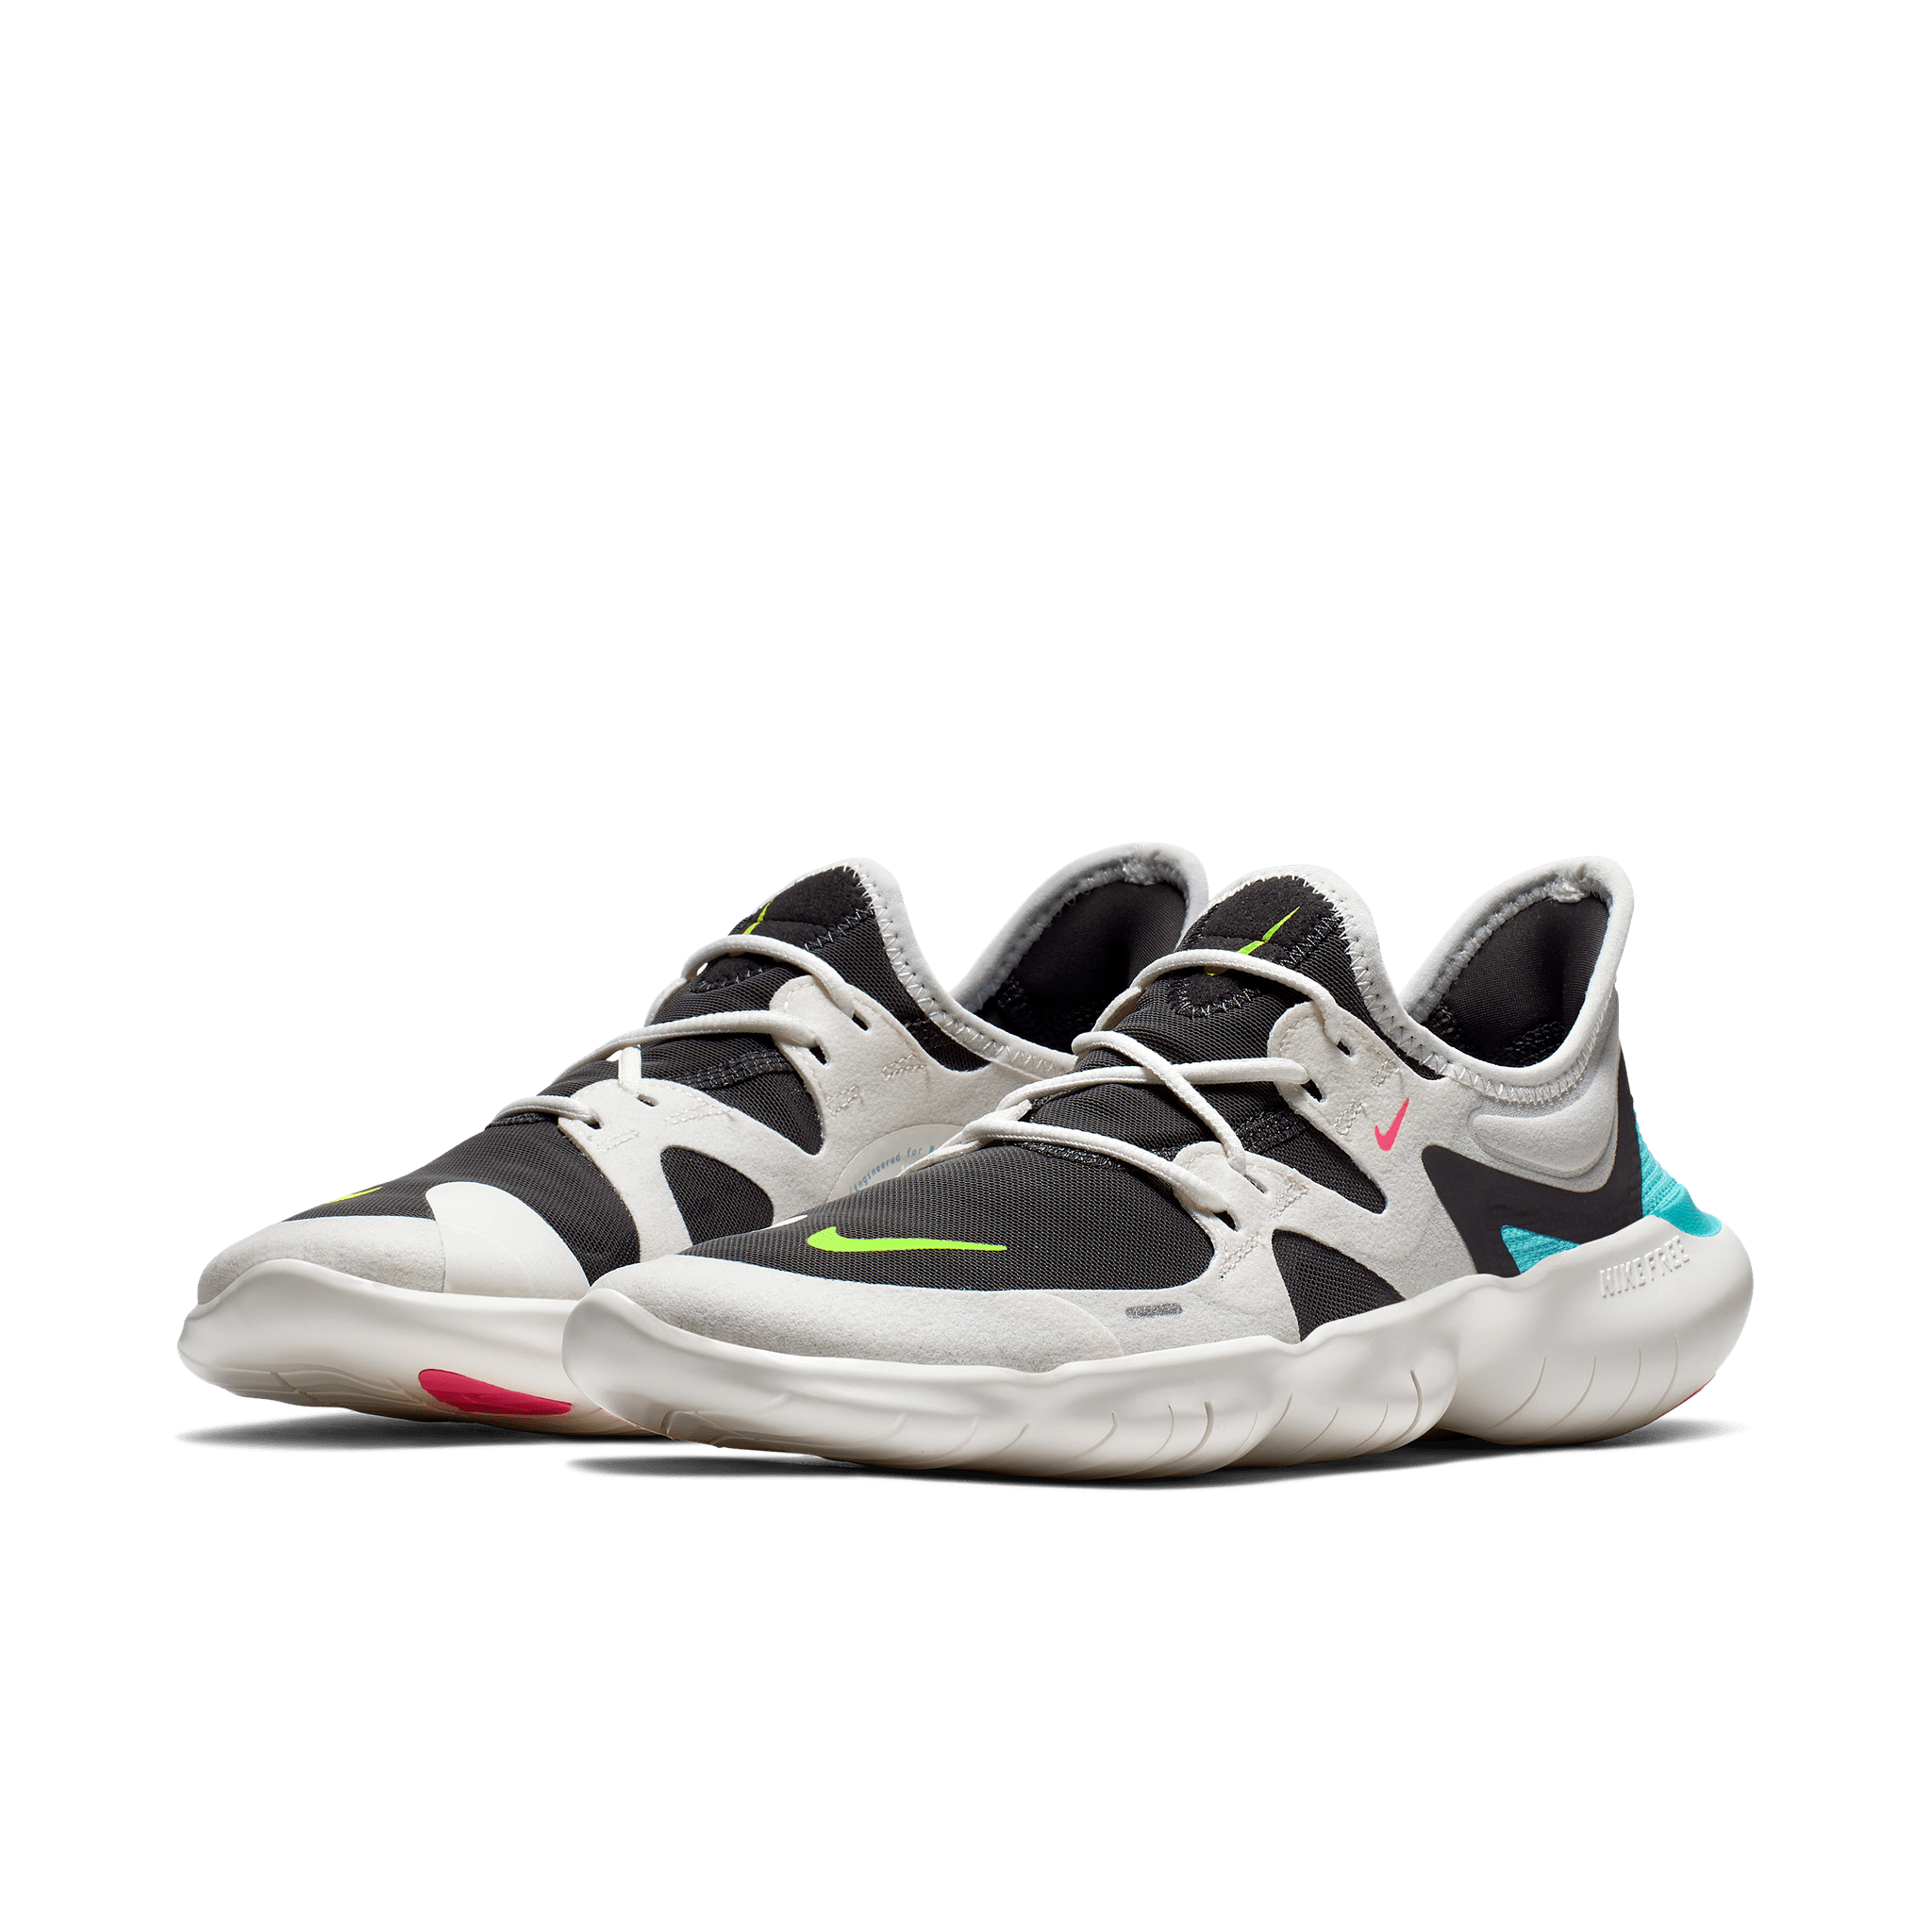 Best Nike Retro Shoes Reviews: Best Nike Shoes of All Time